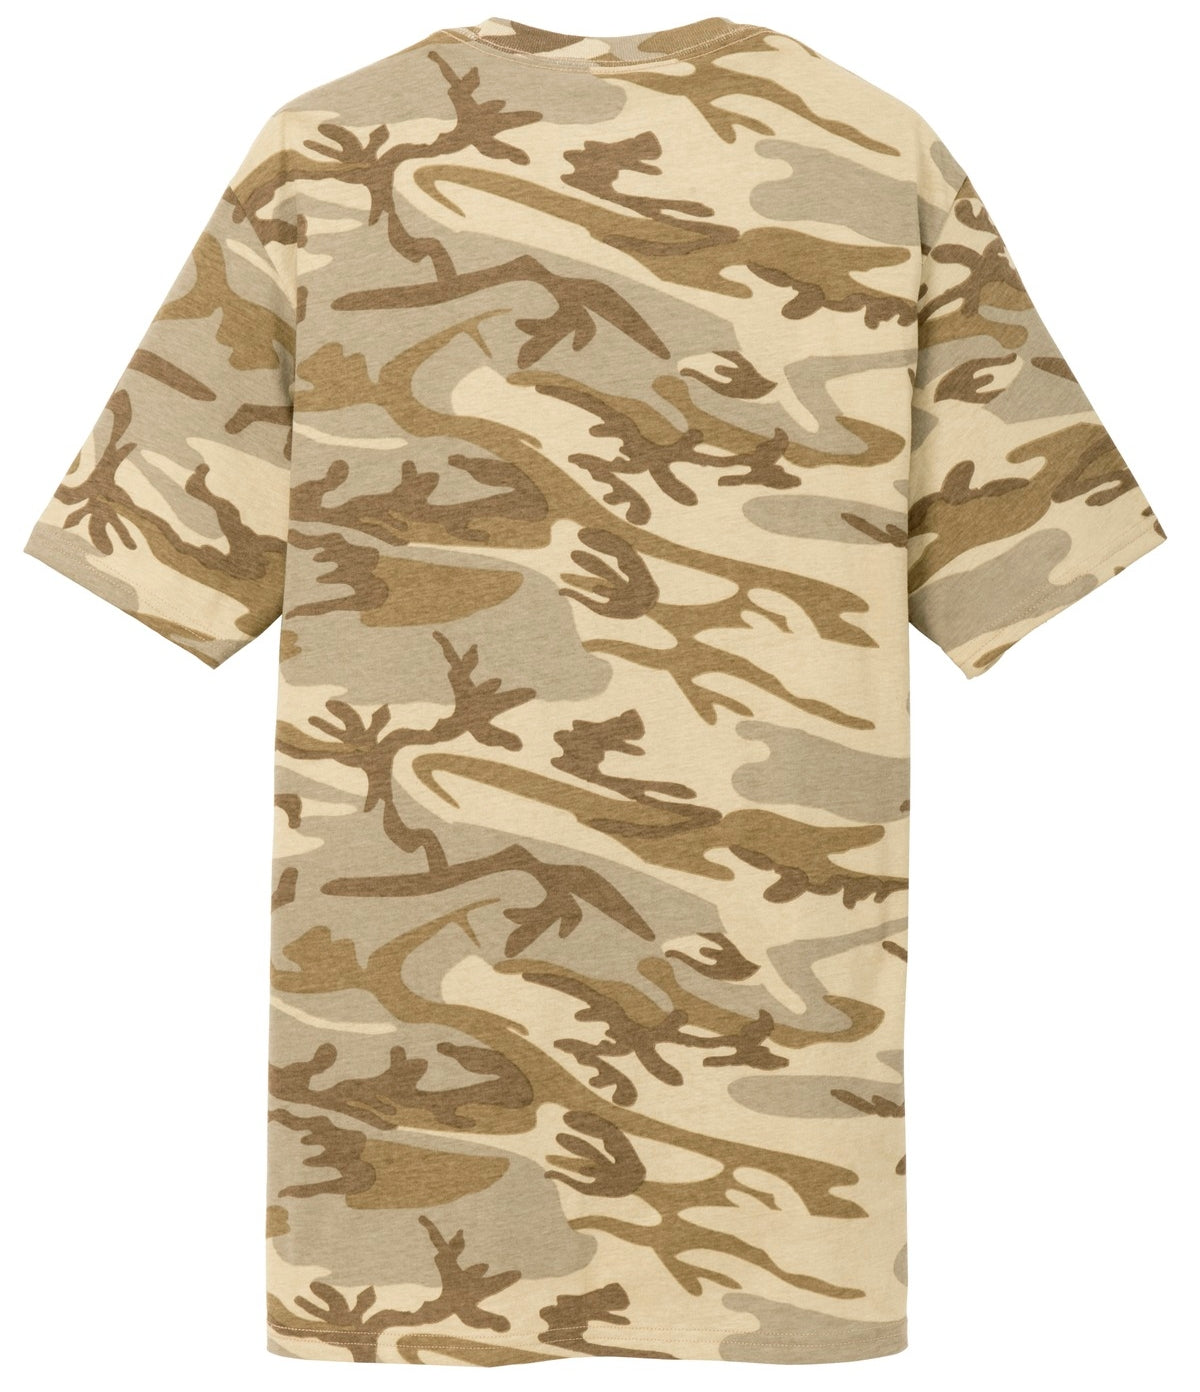 Mafoose Men's 5.4-oz 100% Cotton Tee Shirt Desert Camo-Back